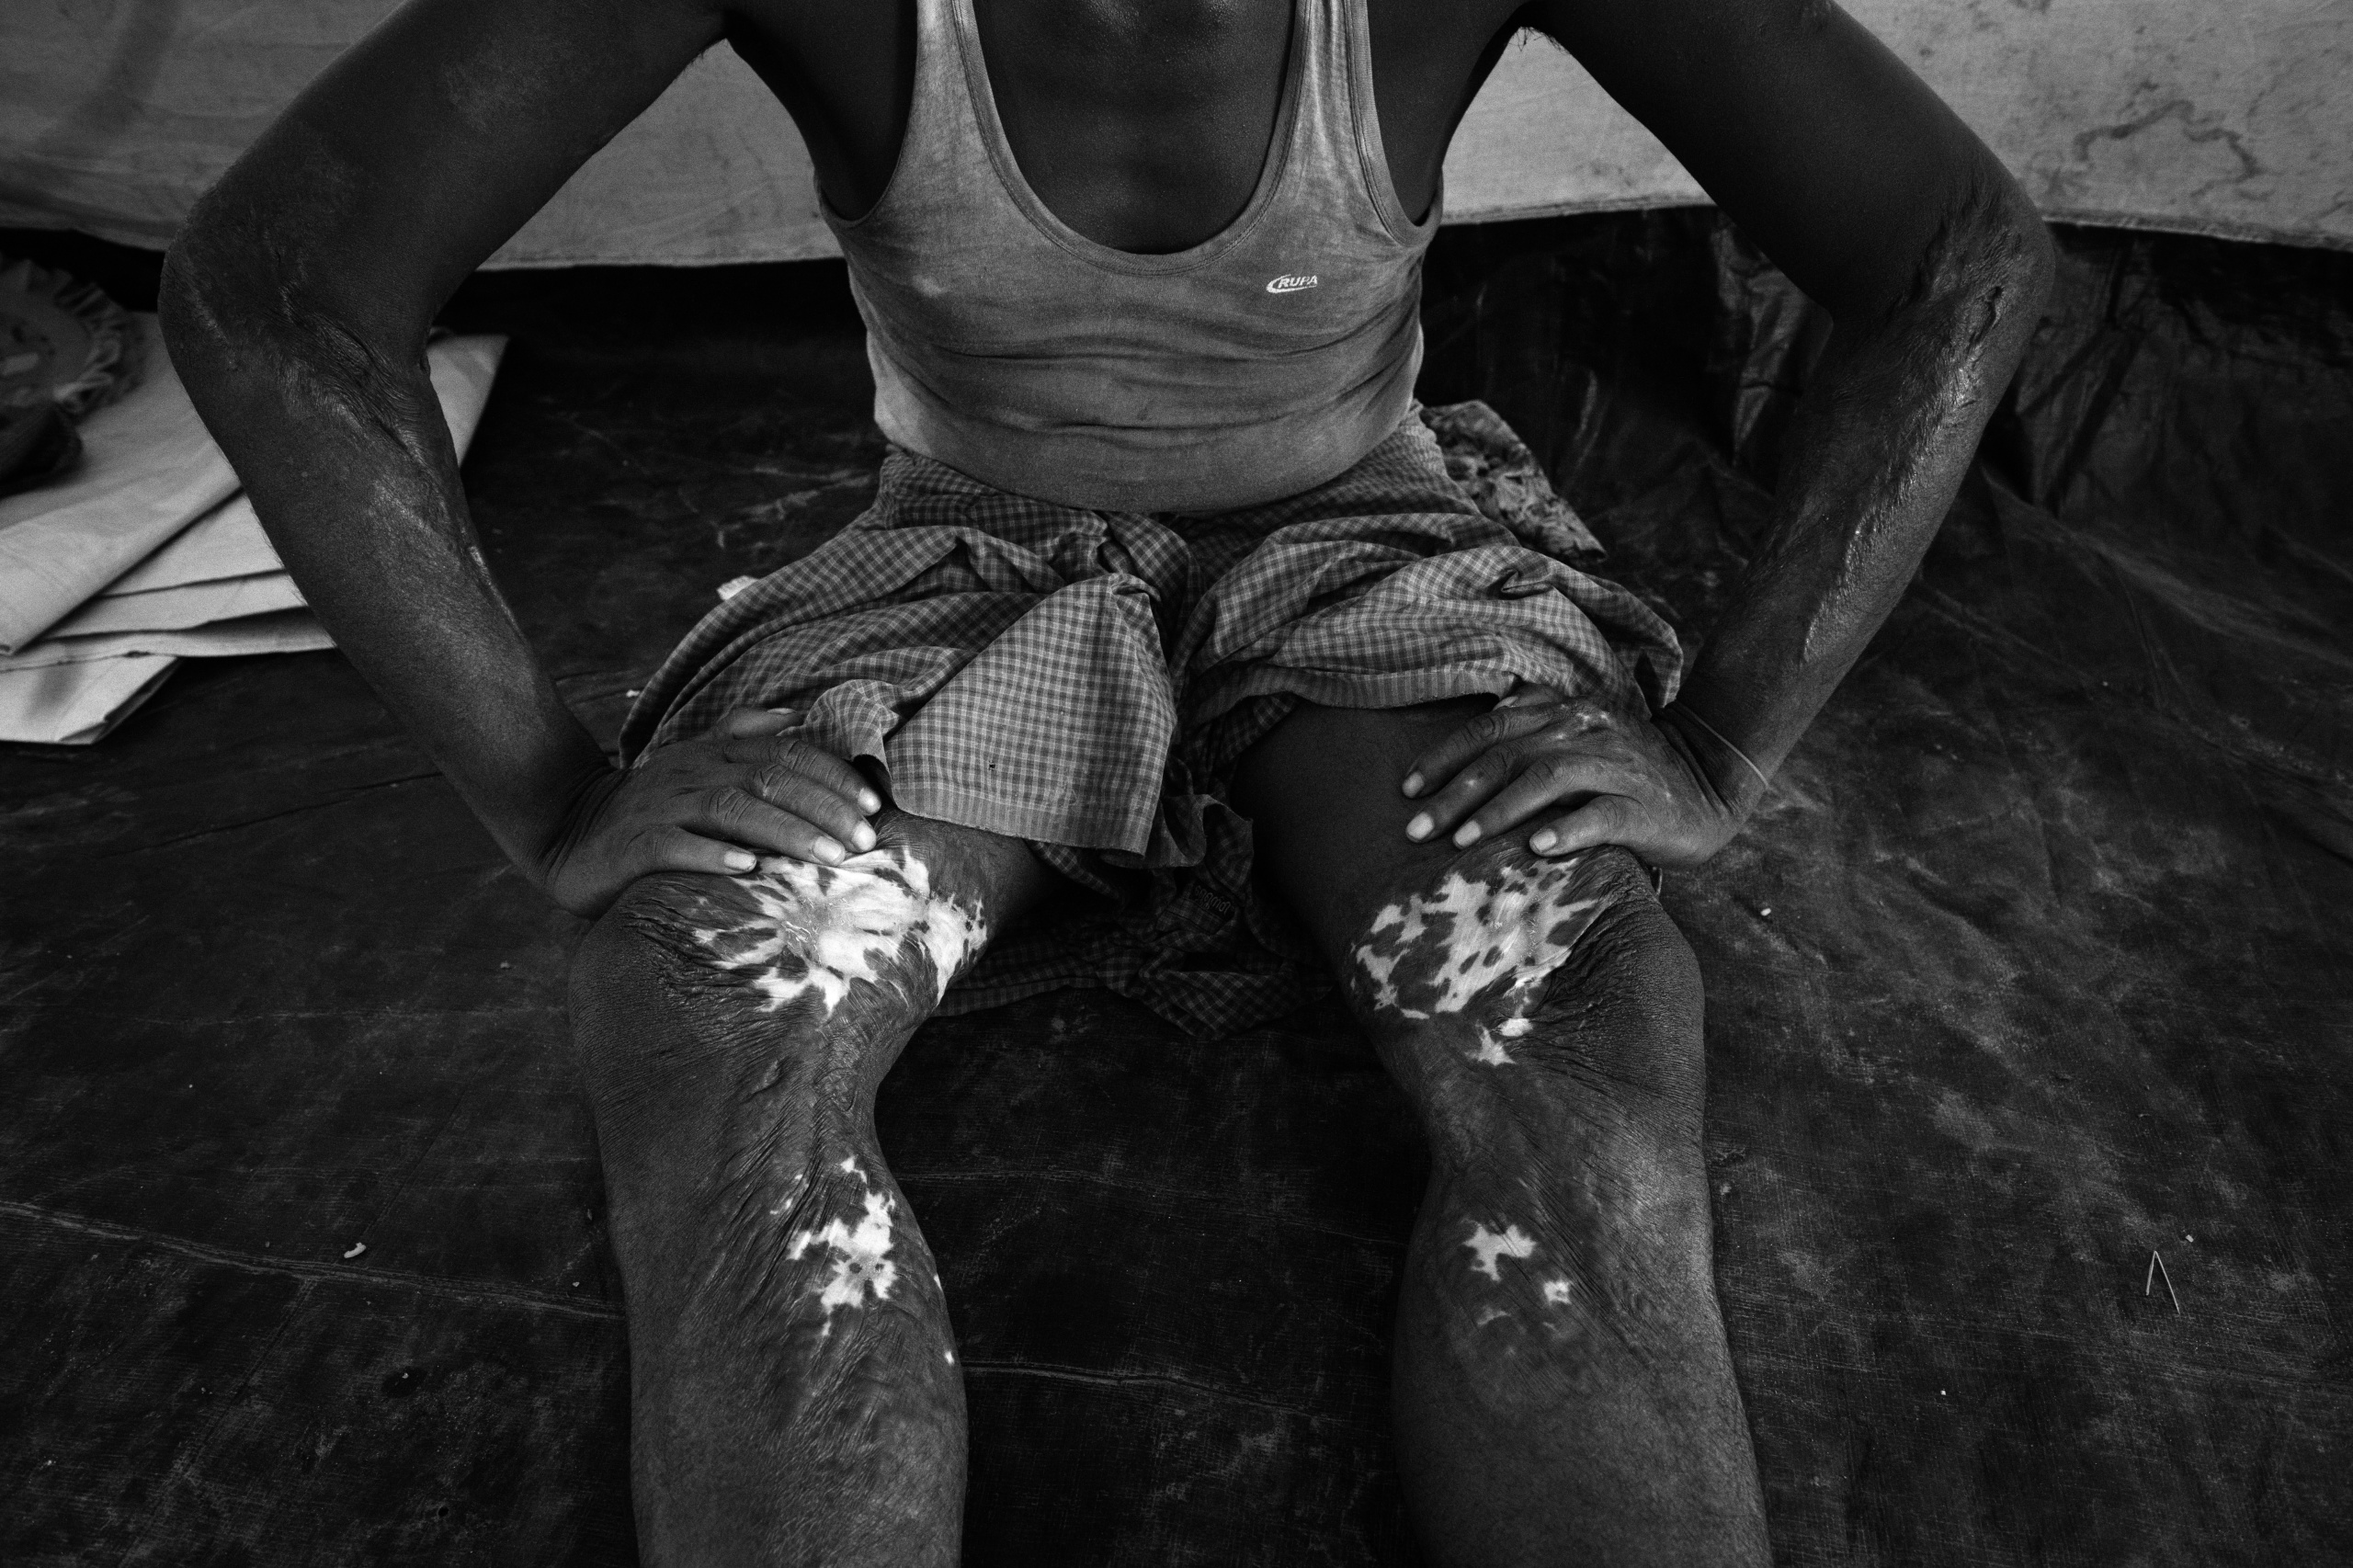 A wounded Rohingya show burn injury since Myanmar Monks torched his house. More than half a million Rohingya refugees have flooded into Bangladesh to flee an offensive by Myanmar's military that the United Nations has called 'a textbook example of ethnic cleansing'. The refugee population is expected to swell further, with thousands more Rohingya Muslims said to be making the perilous journey on foot toward the border, or paying smugglers to take them across by water in wooden boats. Hundreds are known to have died trying to escape, and survivors arrive with horrifying accounts of villages burned, women raped, and scores killed in the 'clearance operations' by Myanmar's army and Buddhist mobs that were sparked by militant attacks on security posts in Rakhine state on August 25, 2017. What the Rohingya refugees flee to is a different kind of suffering in sprawling makeshift camps rife with fears of malnutrition, cholera, and other diseases. Aid organizations are struggling to keep pace with the scale of need and the staggering number of them - an estimated 60 percent - who are children arriving alone. Bangladesh, whose acceptance of the refugees has been praised by humanitarian officials for saving lives, has urged the creation of an internationally-recognized 'safe zone' where refugees can return, though Rohingya Muslims have long been persecuted in predominantly Buddhist Myanmar. World leaders are still debating how to confront the country and its de facto leader, Aung San Suu Kyi, a Nobel Peace Prize laureate who championed democracy, but now appears unable or unwilling to stop the army's brutal crackdown.